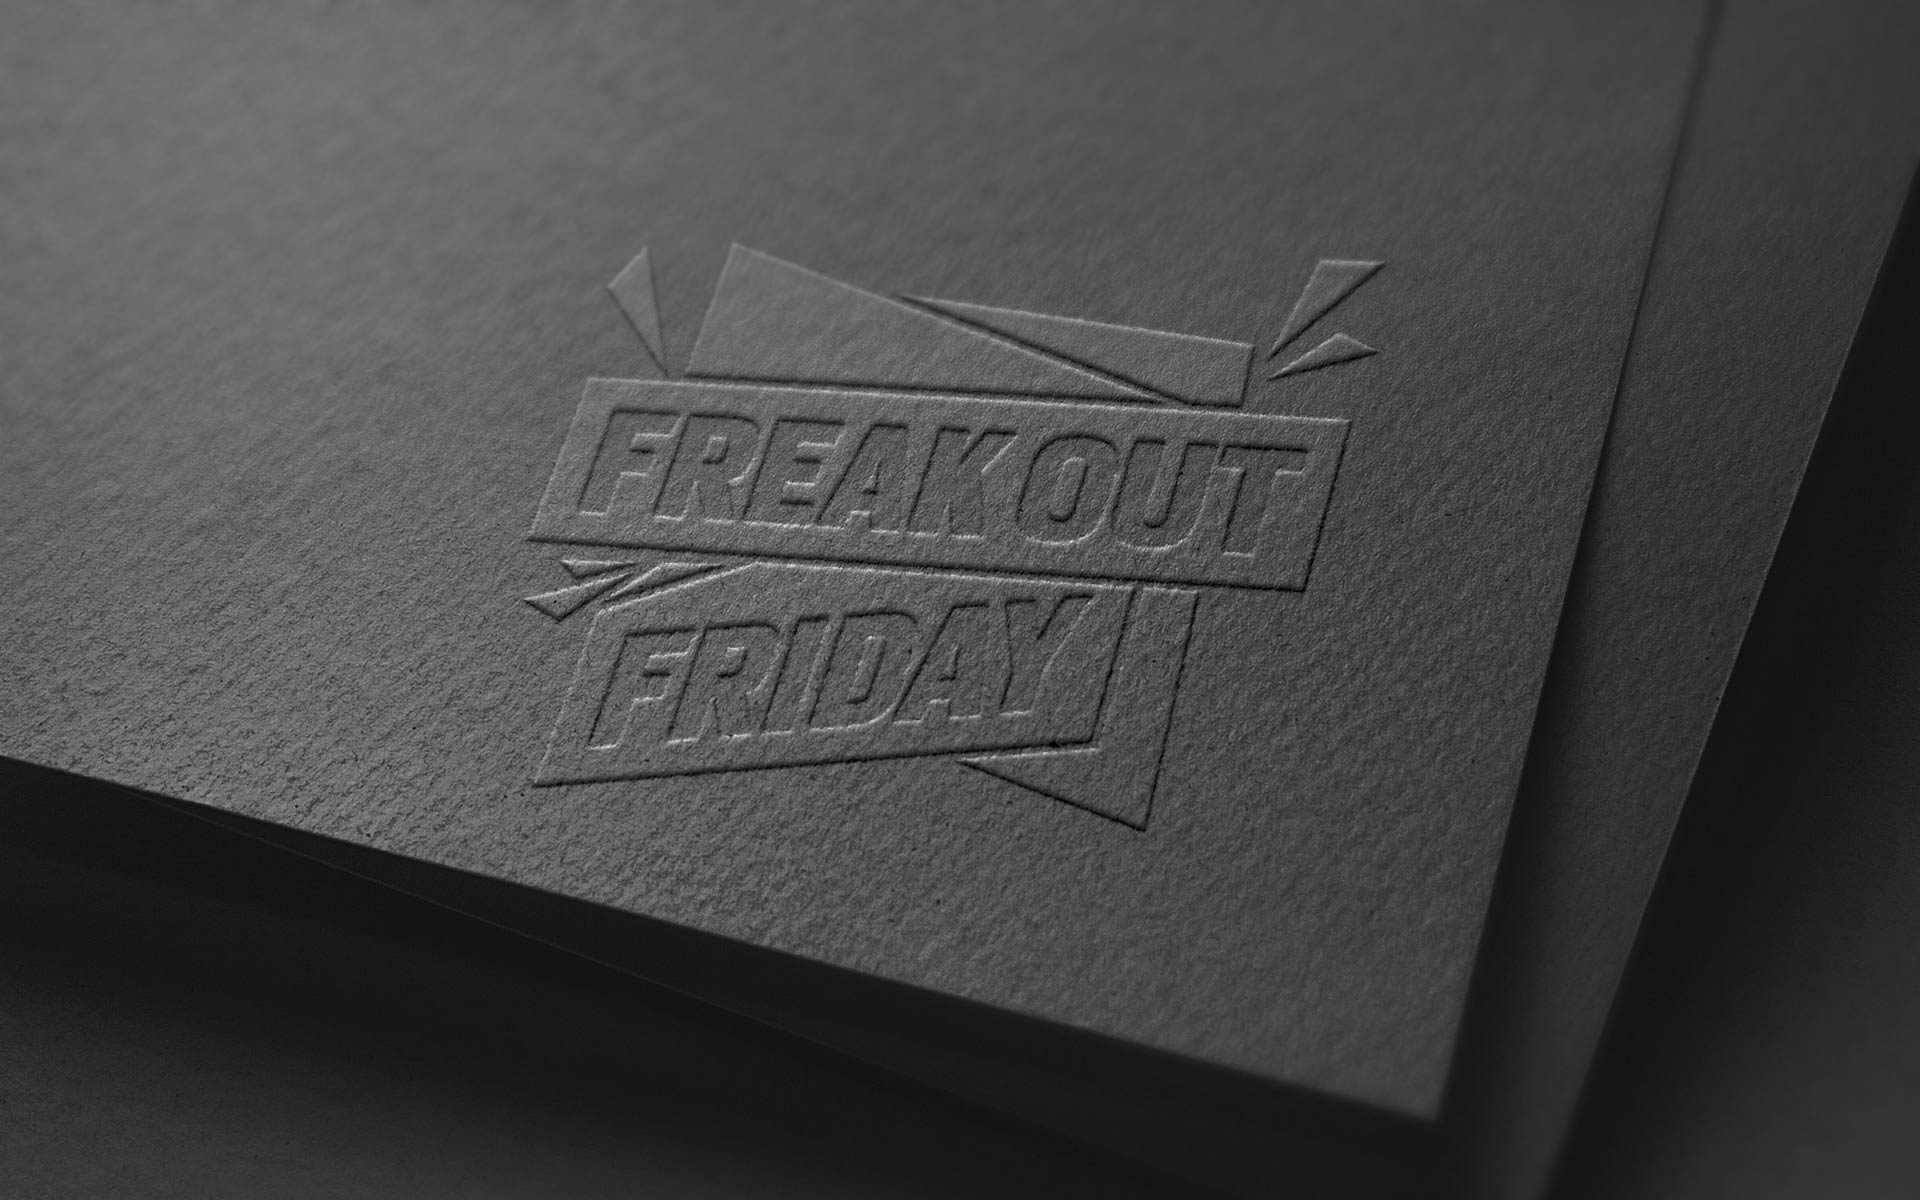 "Saleskampagne ""Freakout Friday"", Bayer 04 Leverkusen, Markenkommunikation, Corporate Design, 1c-Variante geprägt"